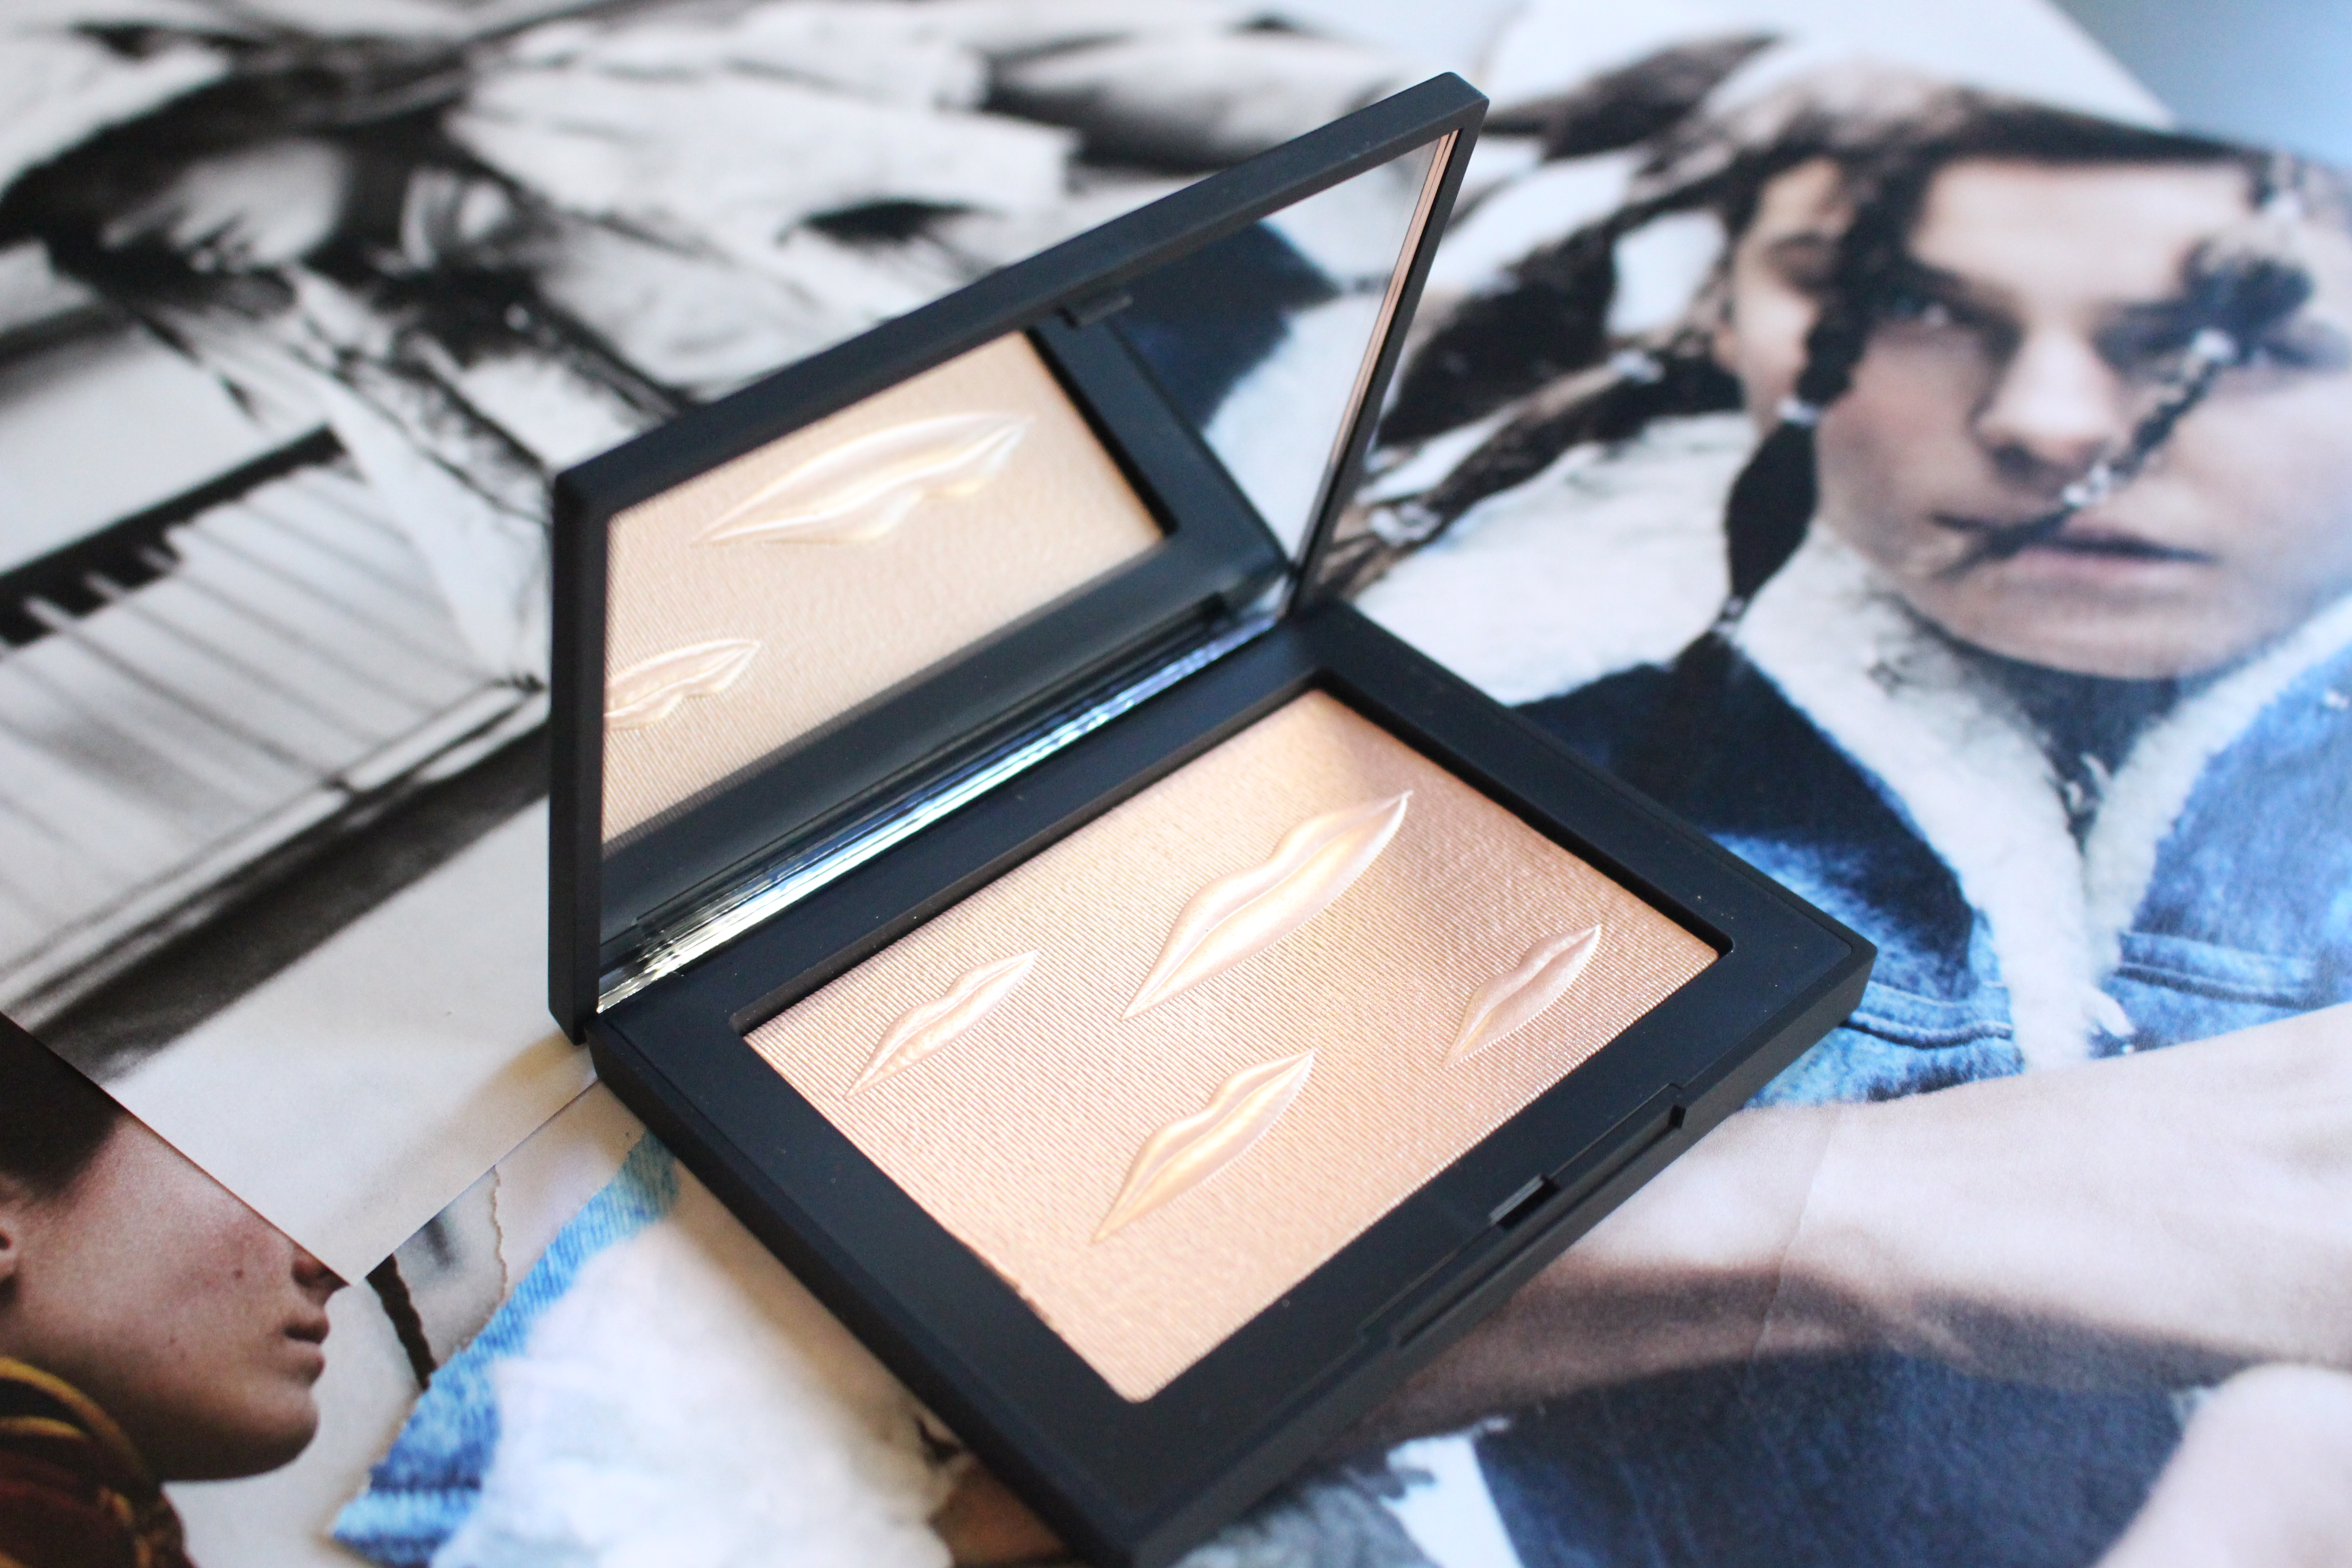 Man Ray for NARS Overexposed Glow Highlighter